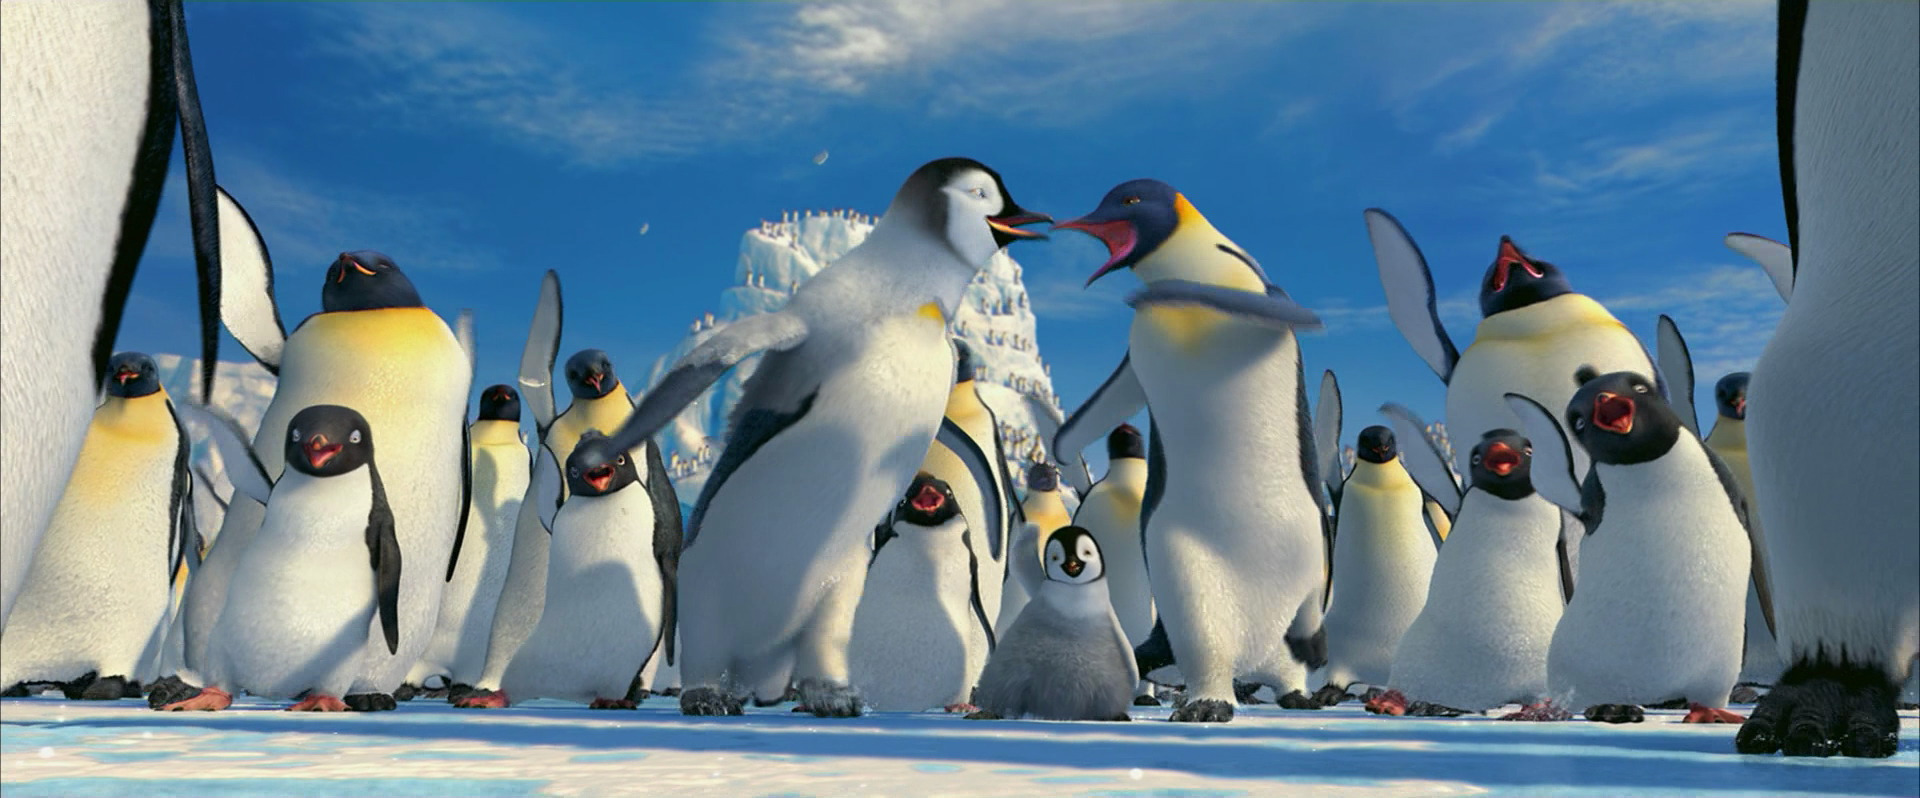 Erik - Happy Feet Wiki, The Movie-Based Happy Feet Encyclopedia